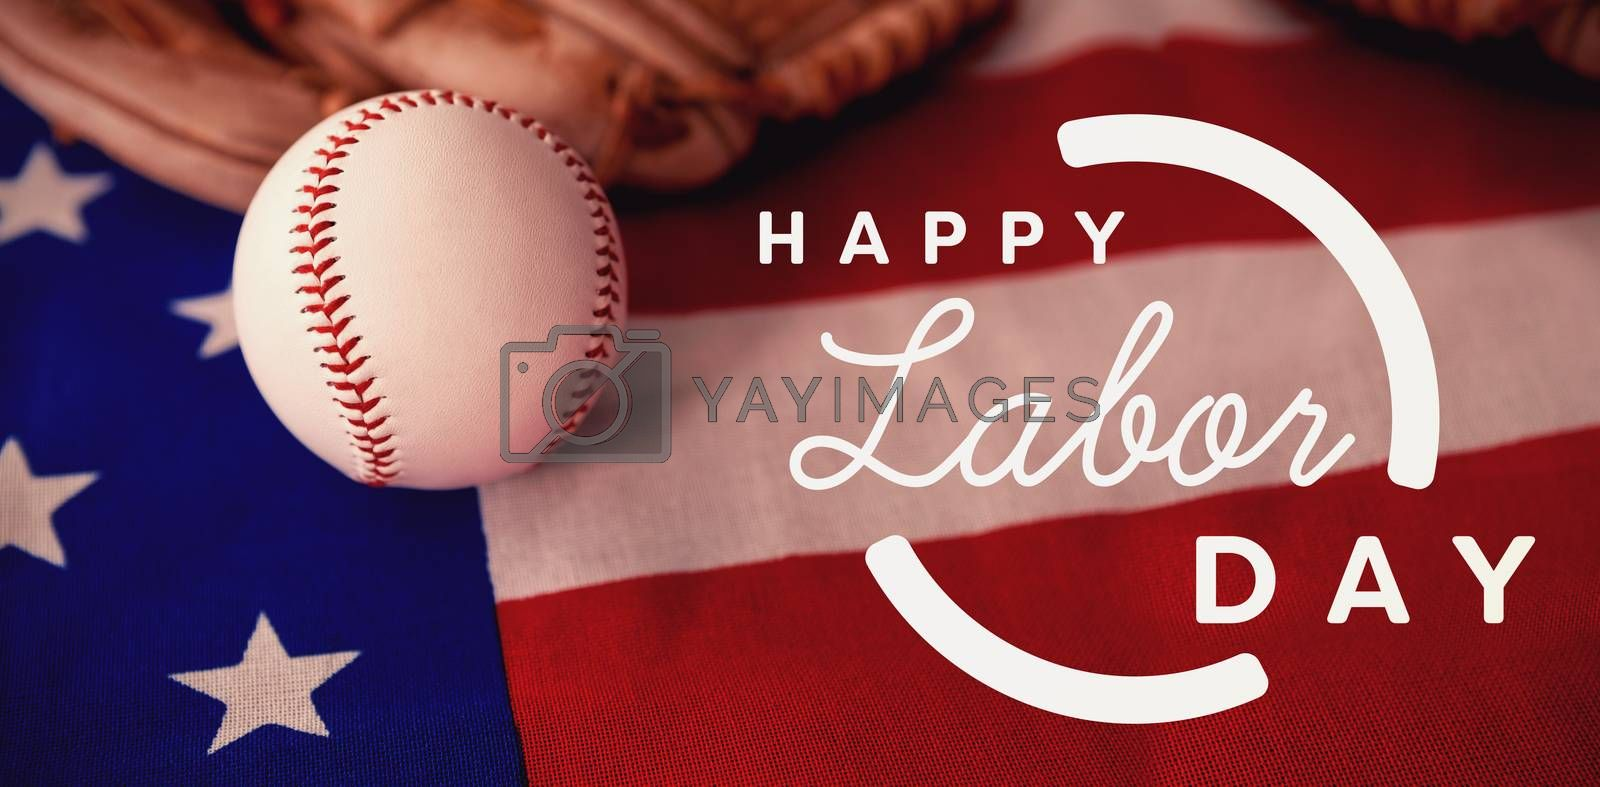 Composite image of digital composite image of happy labor day text with blue outline by Wavebreakmedia